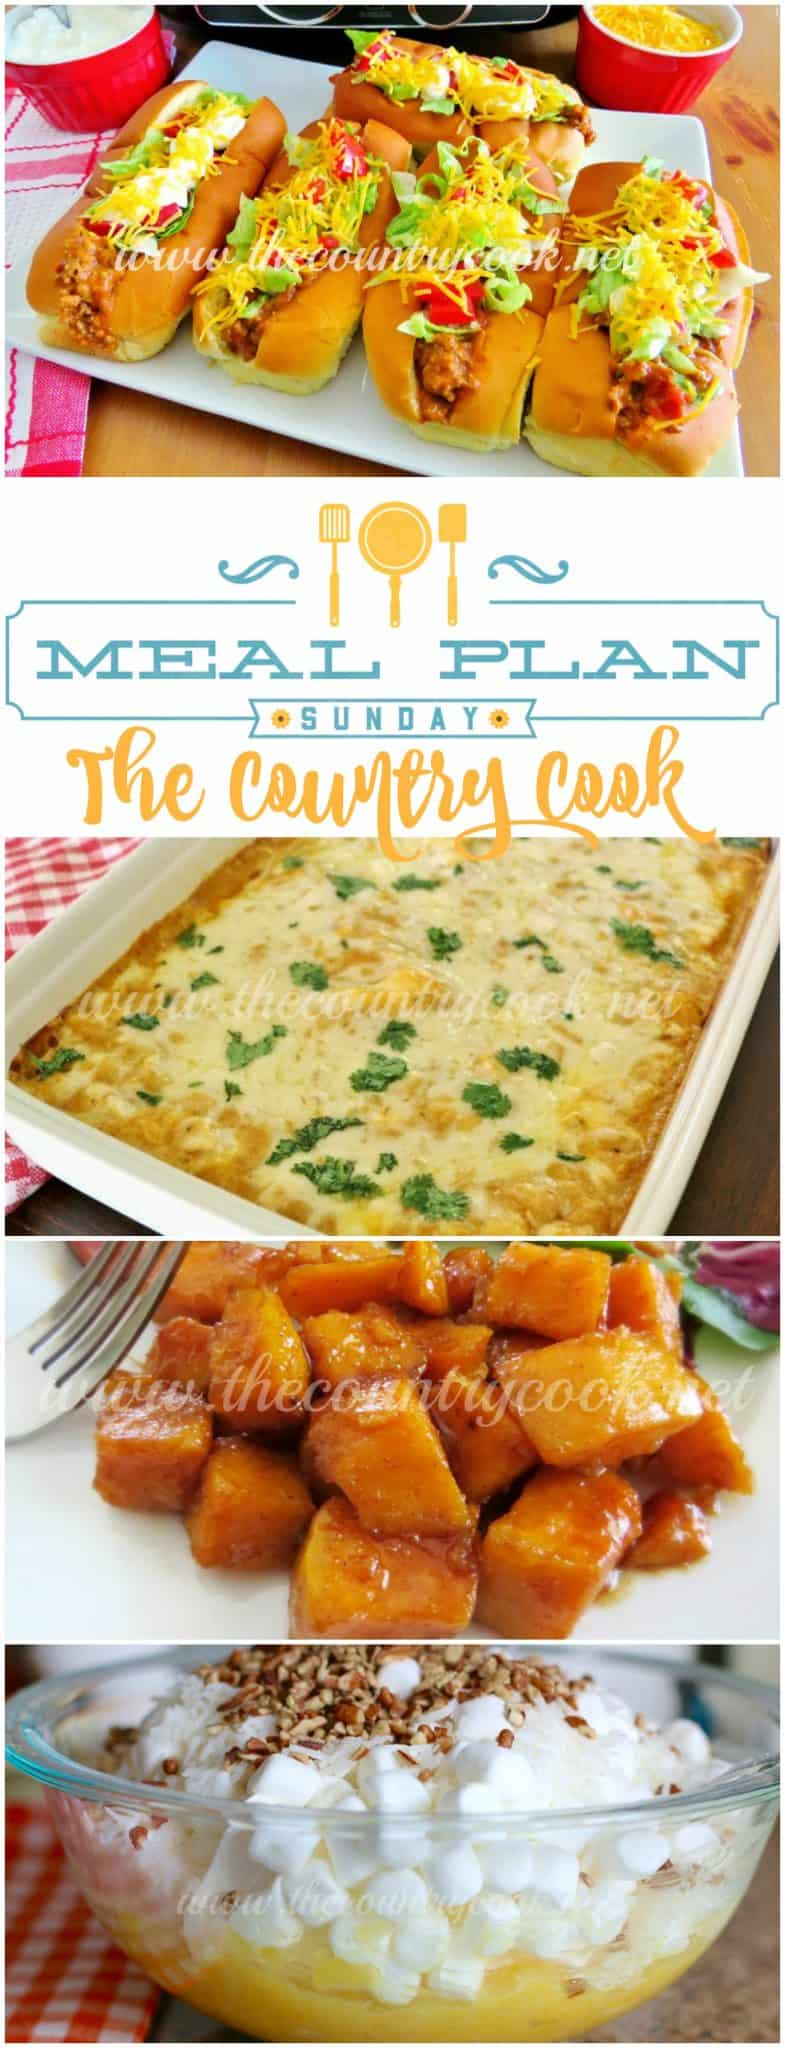 meal plan sunday 3 includes dinner ideas for the whole week